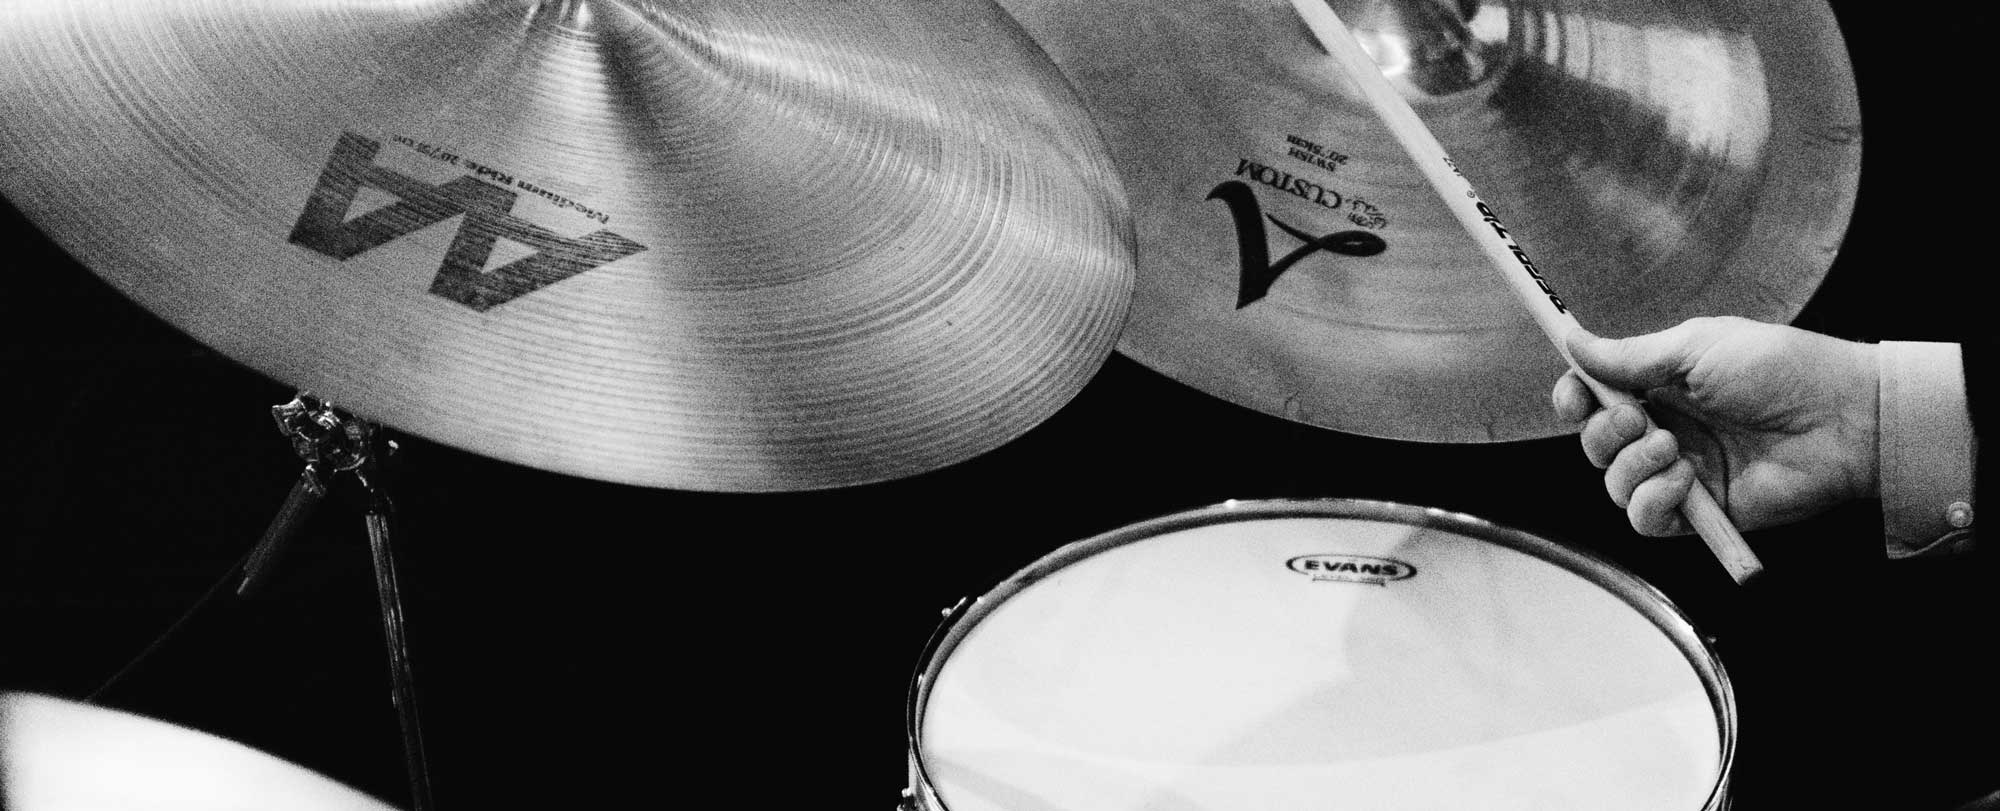 The physics of drumming